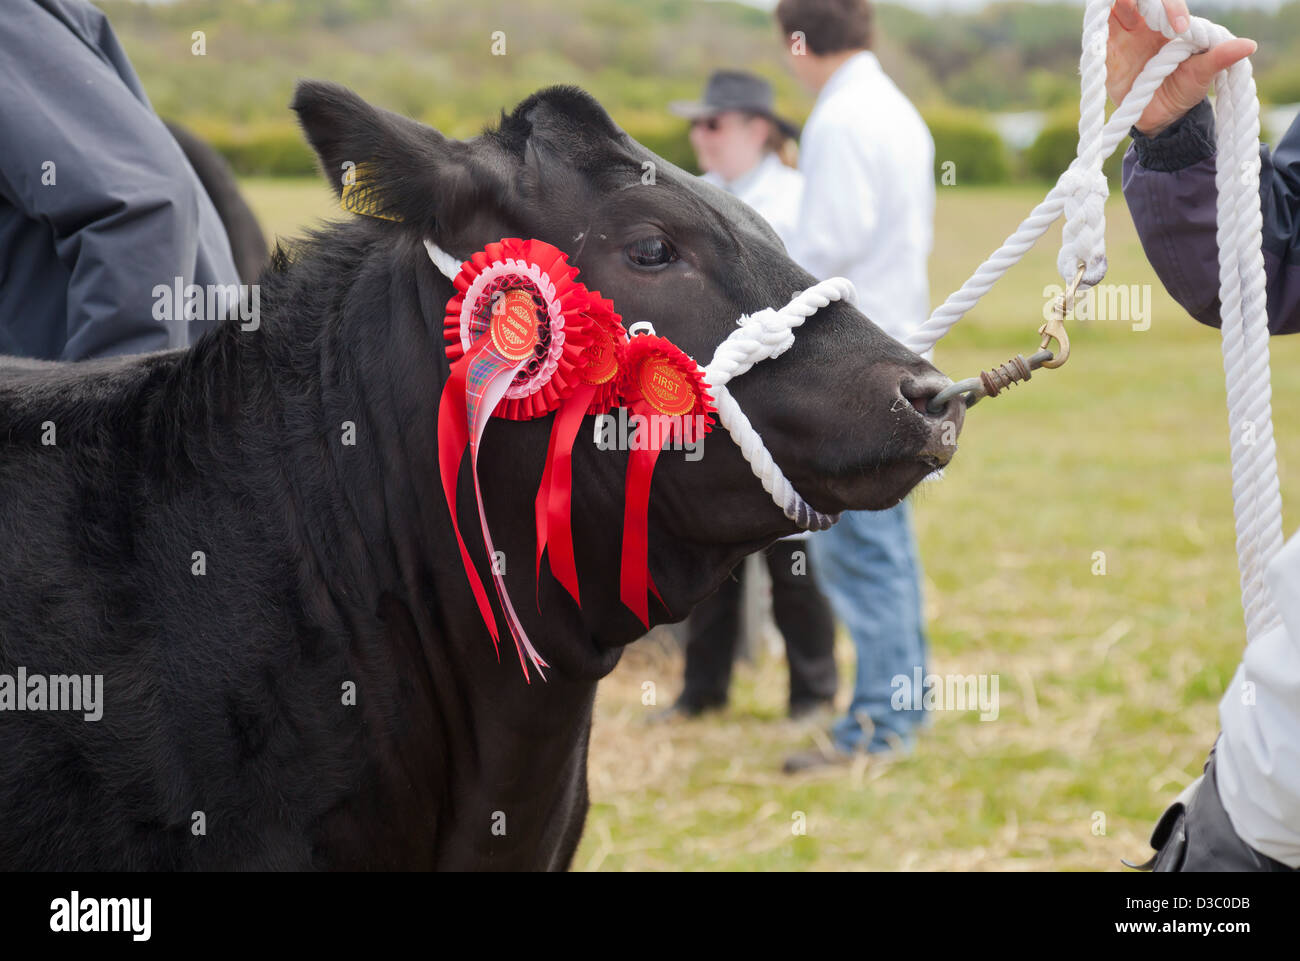 Champion Black Limousin cow with three rosettes being held by a harness at a Farmer's show in Ayrshire, Scotland. - Stock Image